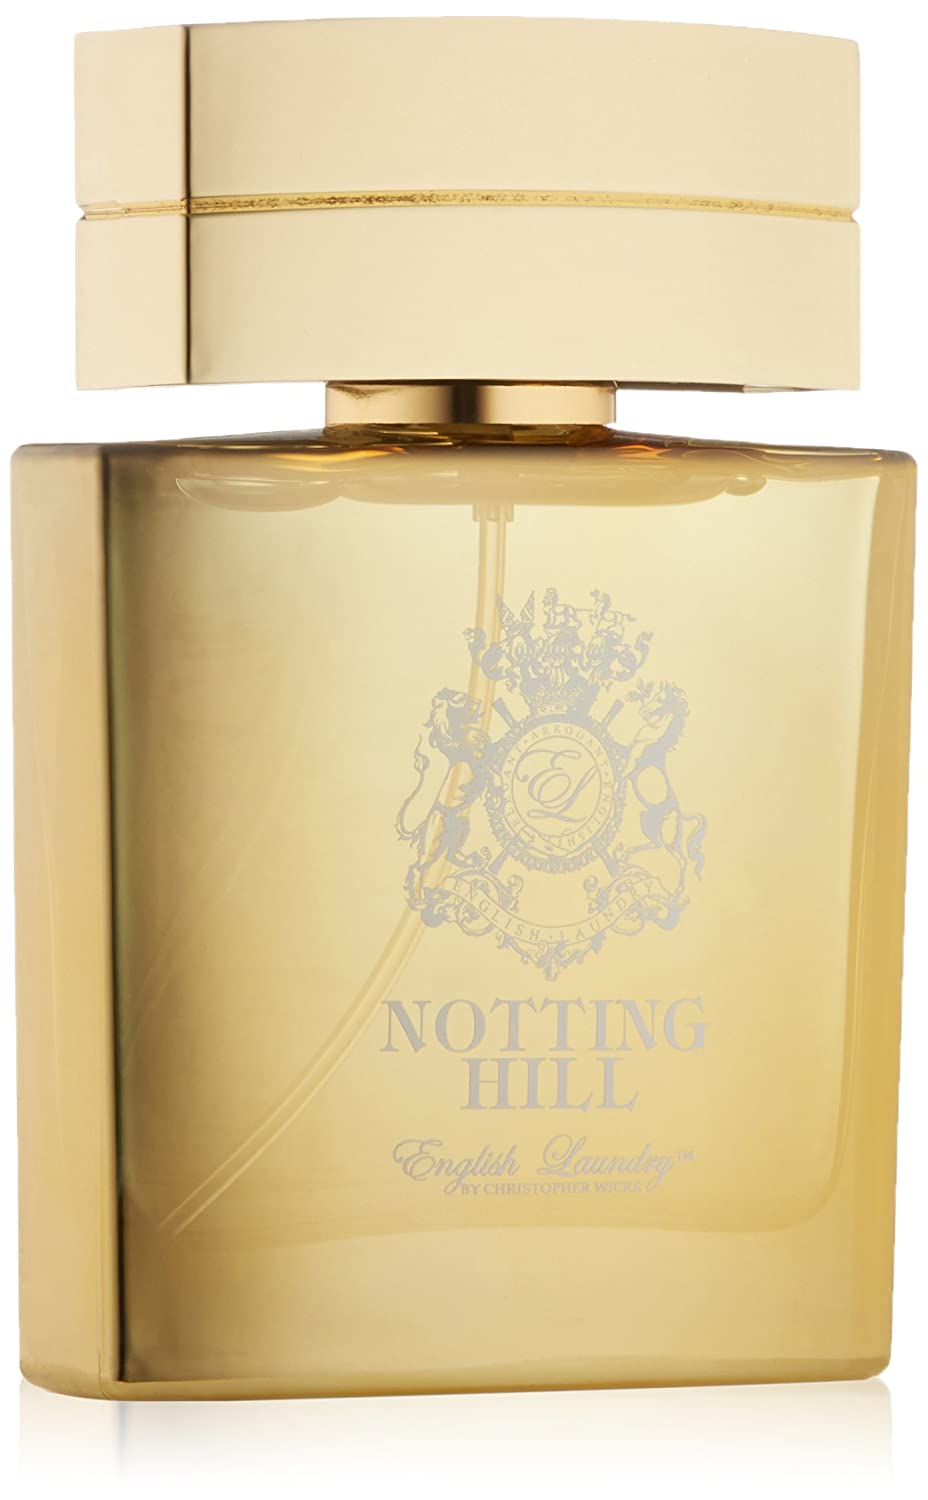 Amazon.com: English Laundry Notting Hill Eau de Parfum, 1.7 fl. oz.: Luxury Beauty